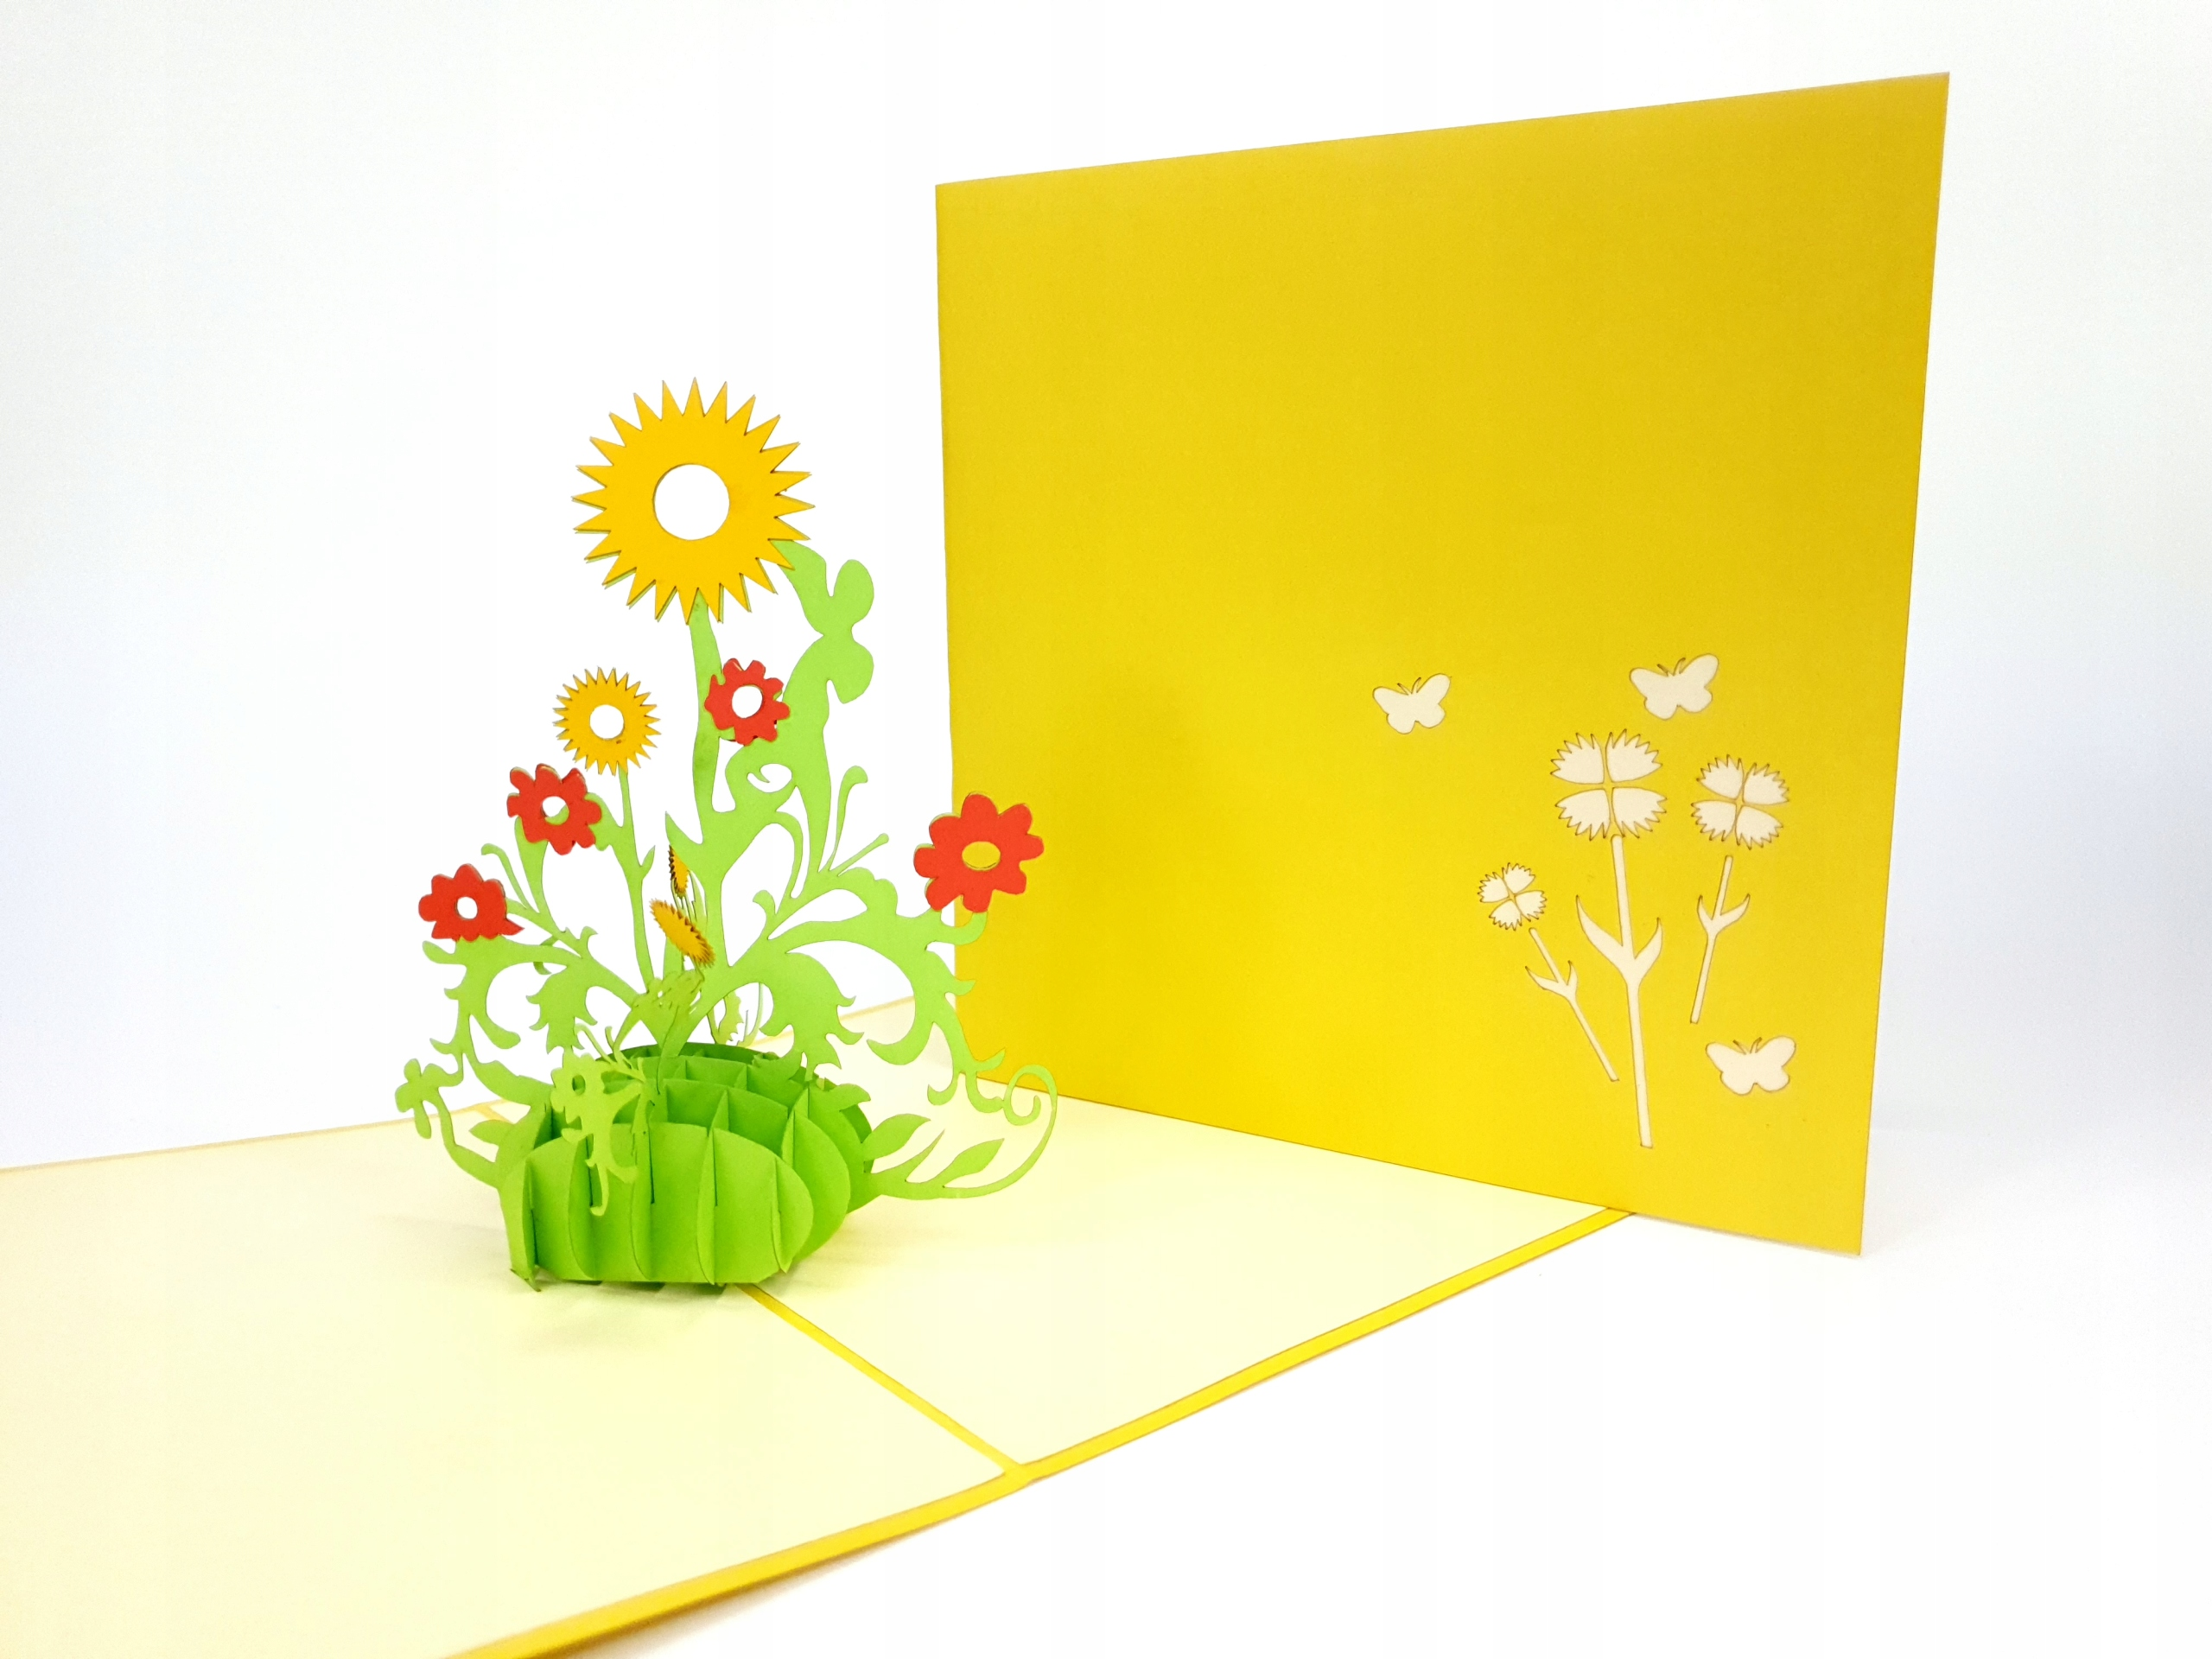 Item The flowers are Sunflowers, Postcard 3d, international Women's Day, Summer